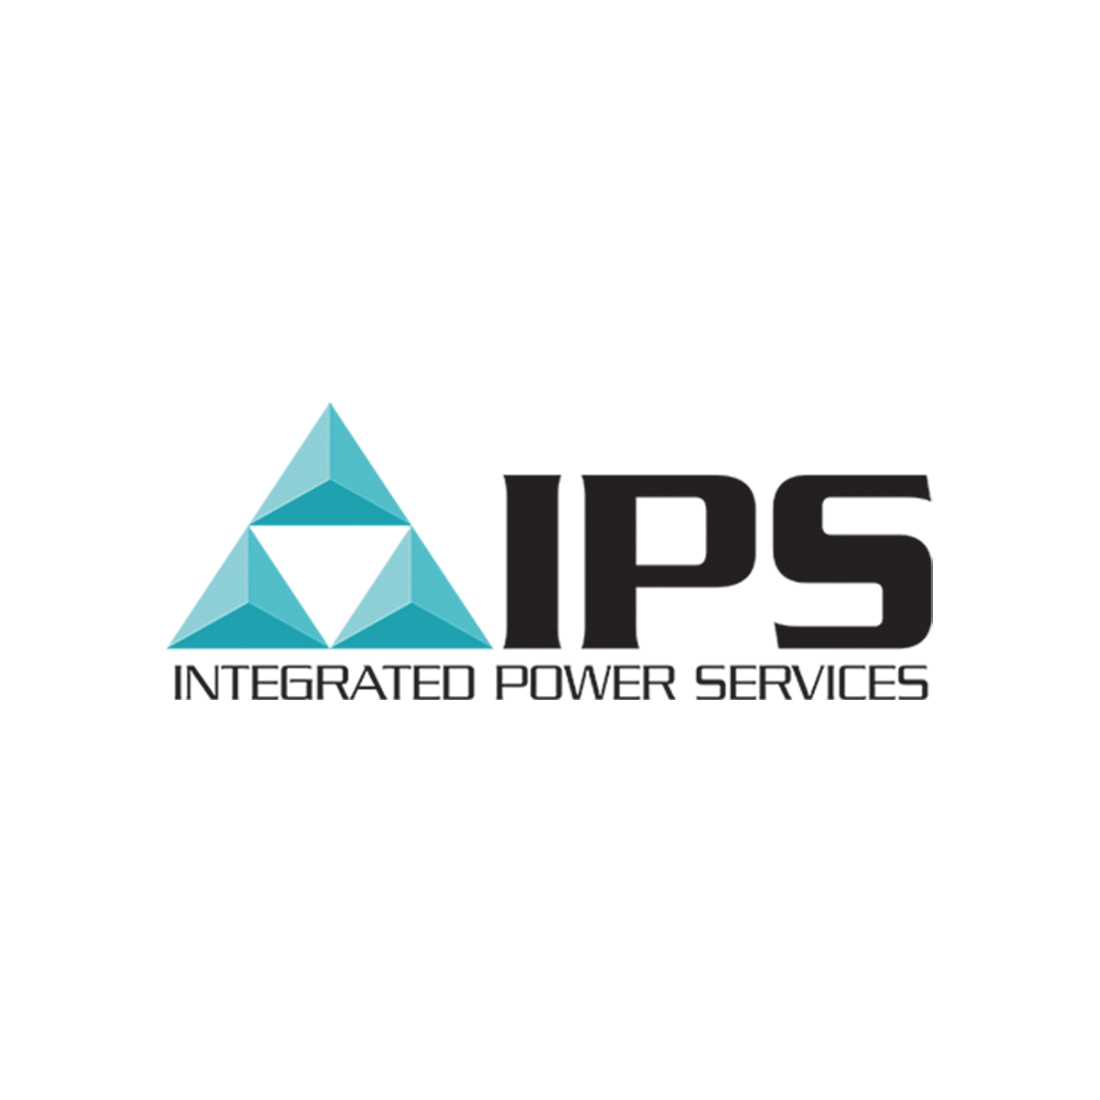 Integrated Power Services